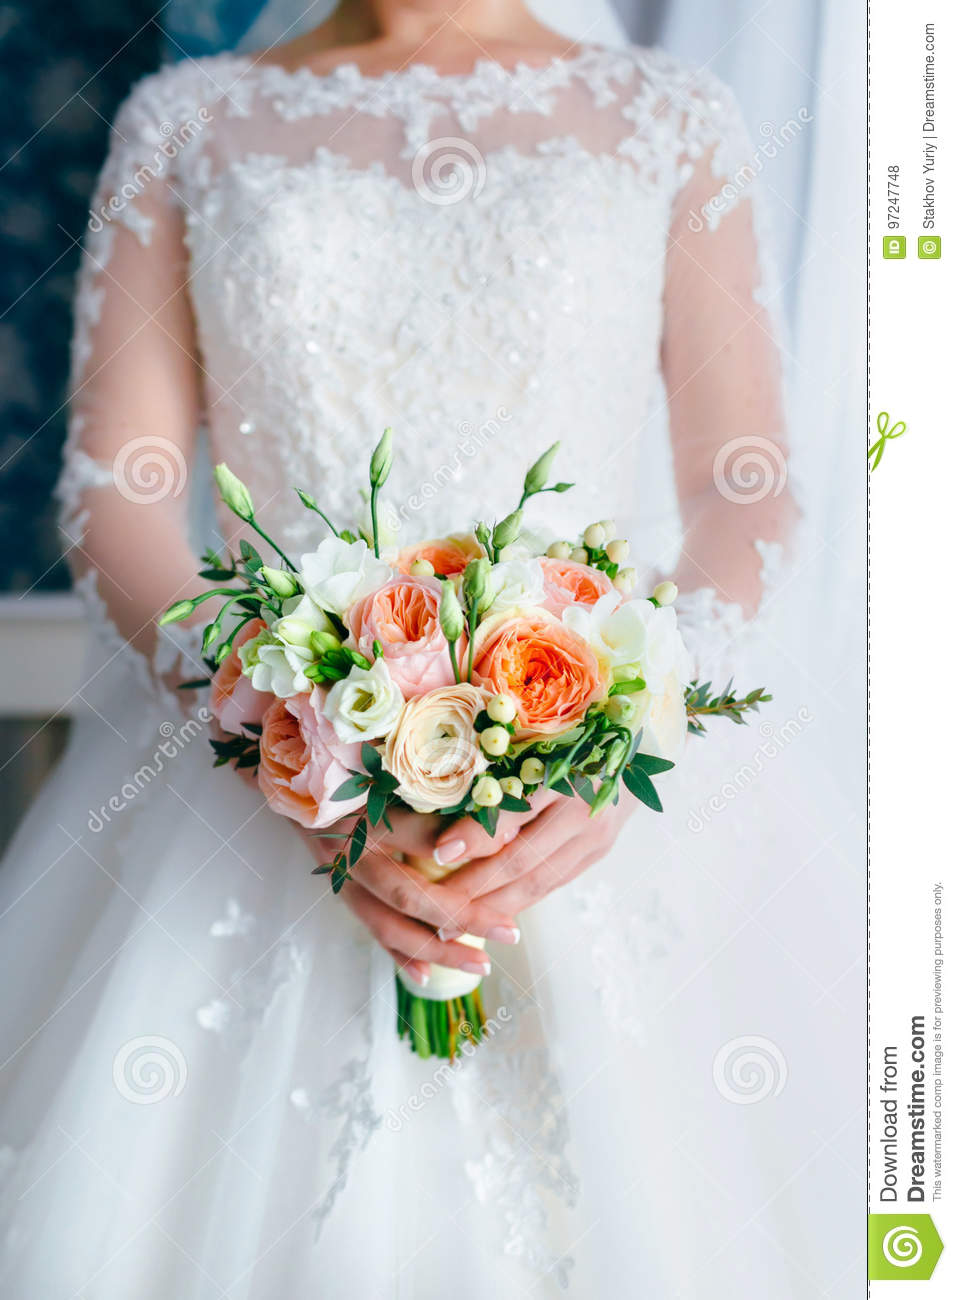 Beautiful Bridal Bouquet With White Roses And Peach Peonies In A Bride Hands In White Dress Wedding Morning Close Up Stock Photo Image Of Holding Celebration 97247748